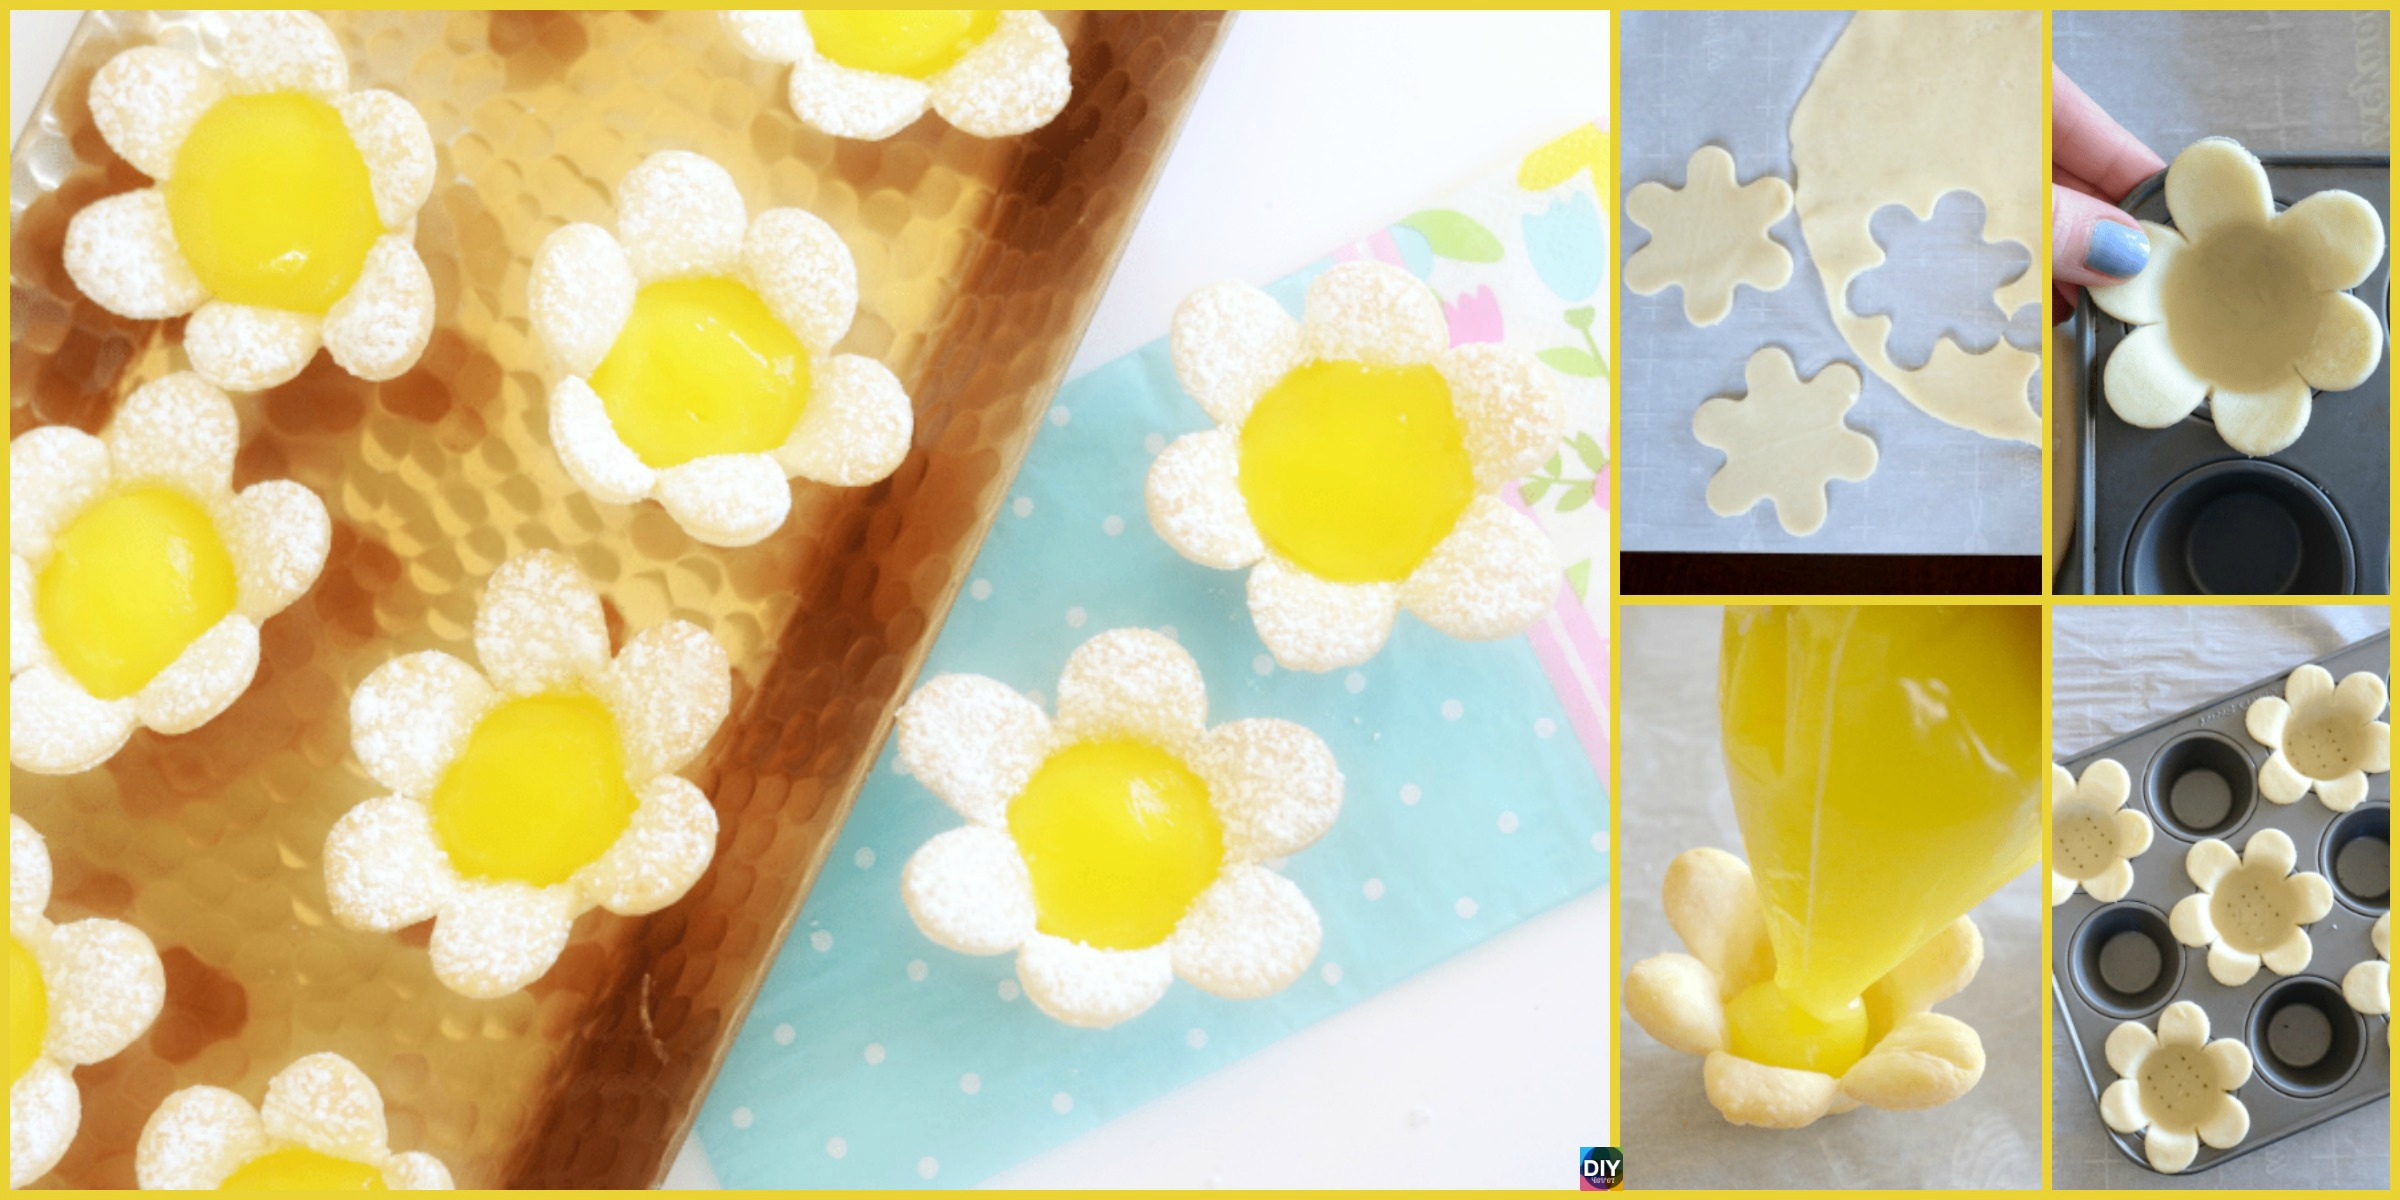 DIY Mini Lemon Flower Tarts Recipe